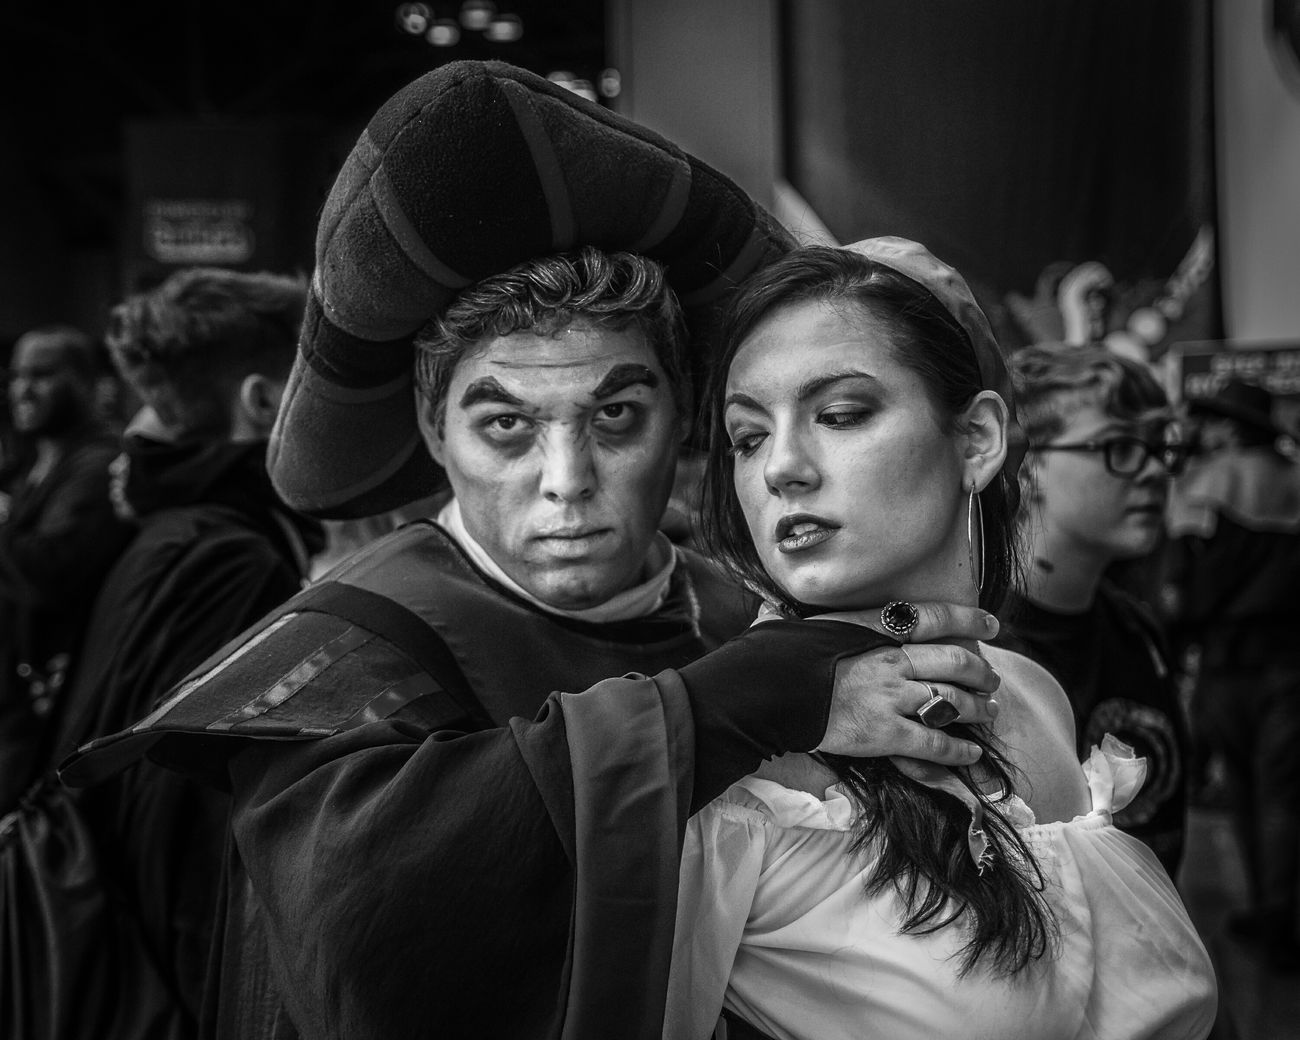 Frollo & Esmeralda | New York Comic Con | 2014 The Portraitist - 2015 EyeEm AwardsBlackandwhite Black And White Monochrome Manhattan Cosplayer Cosplaying Frollo NYC Photography New York City